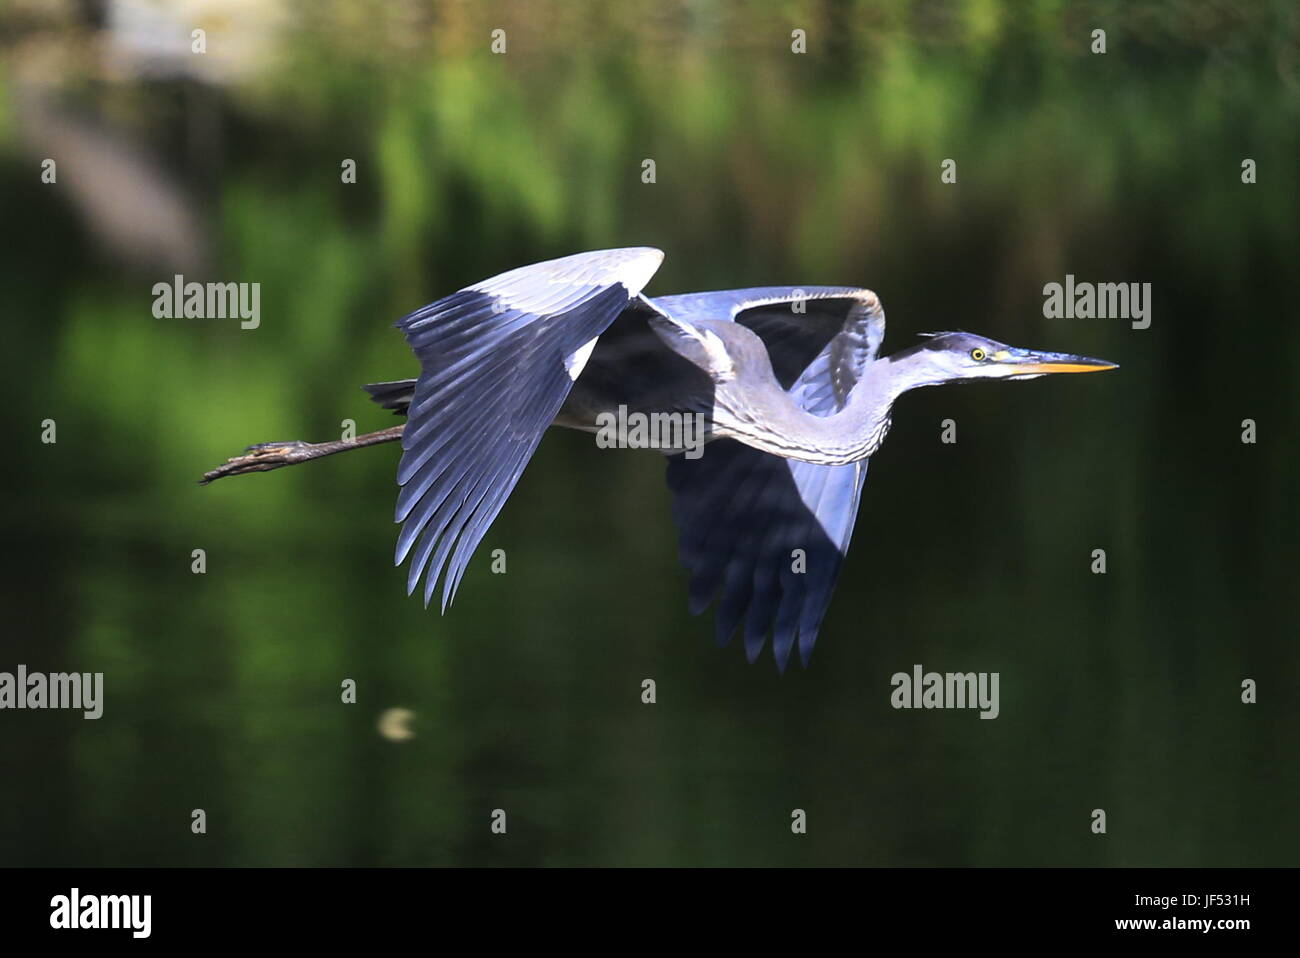 ROSTOV-ON-DON, RUSSIA – JUNE 28, 2017: A grey heron at the Rostov-on-Don Zoo. Valery Matytsin/TASS - Stock Image